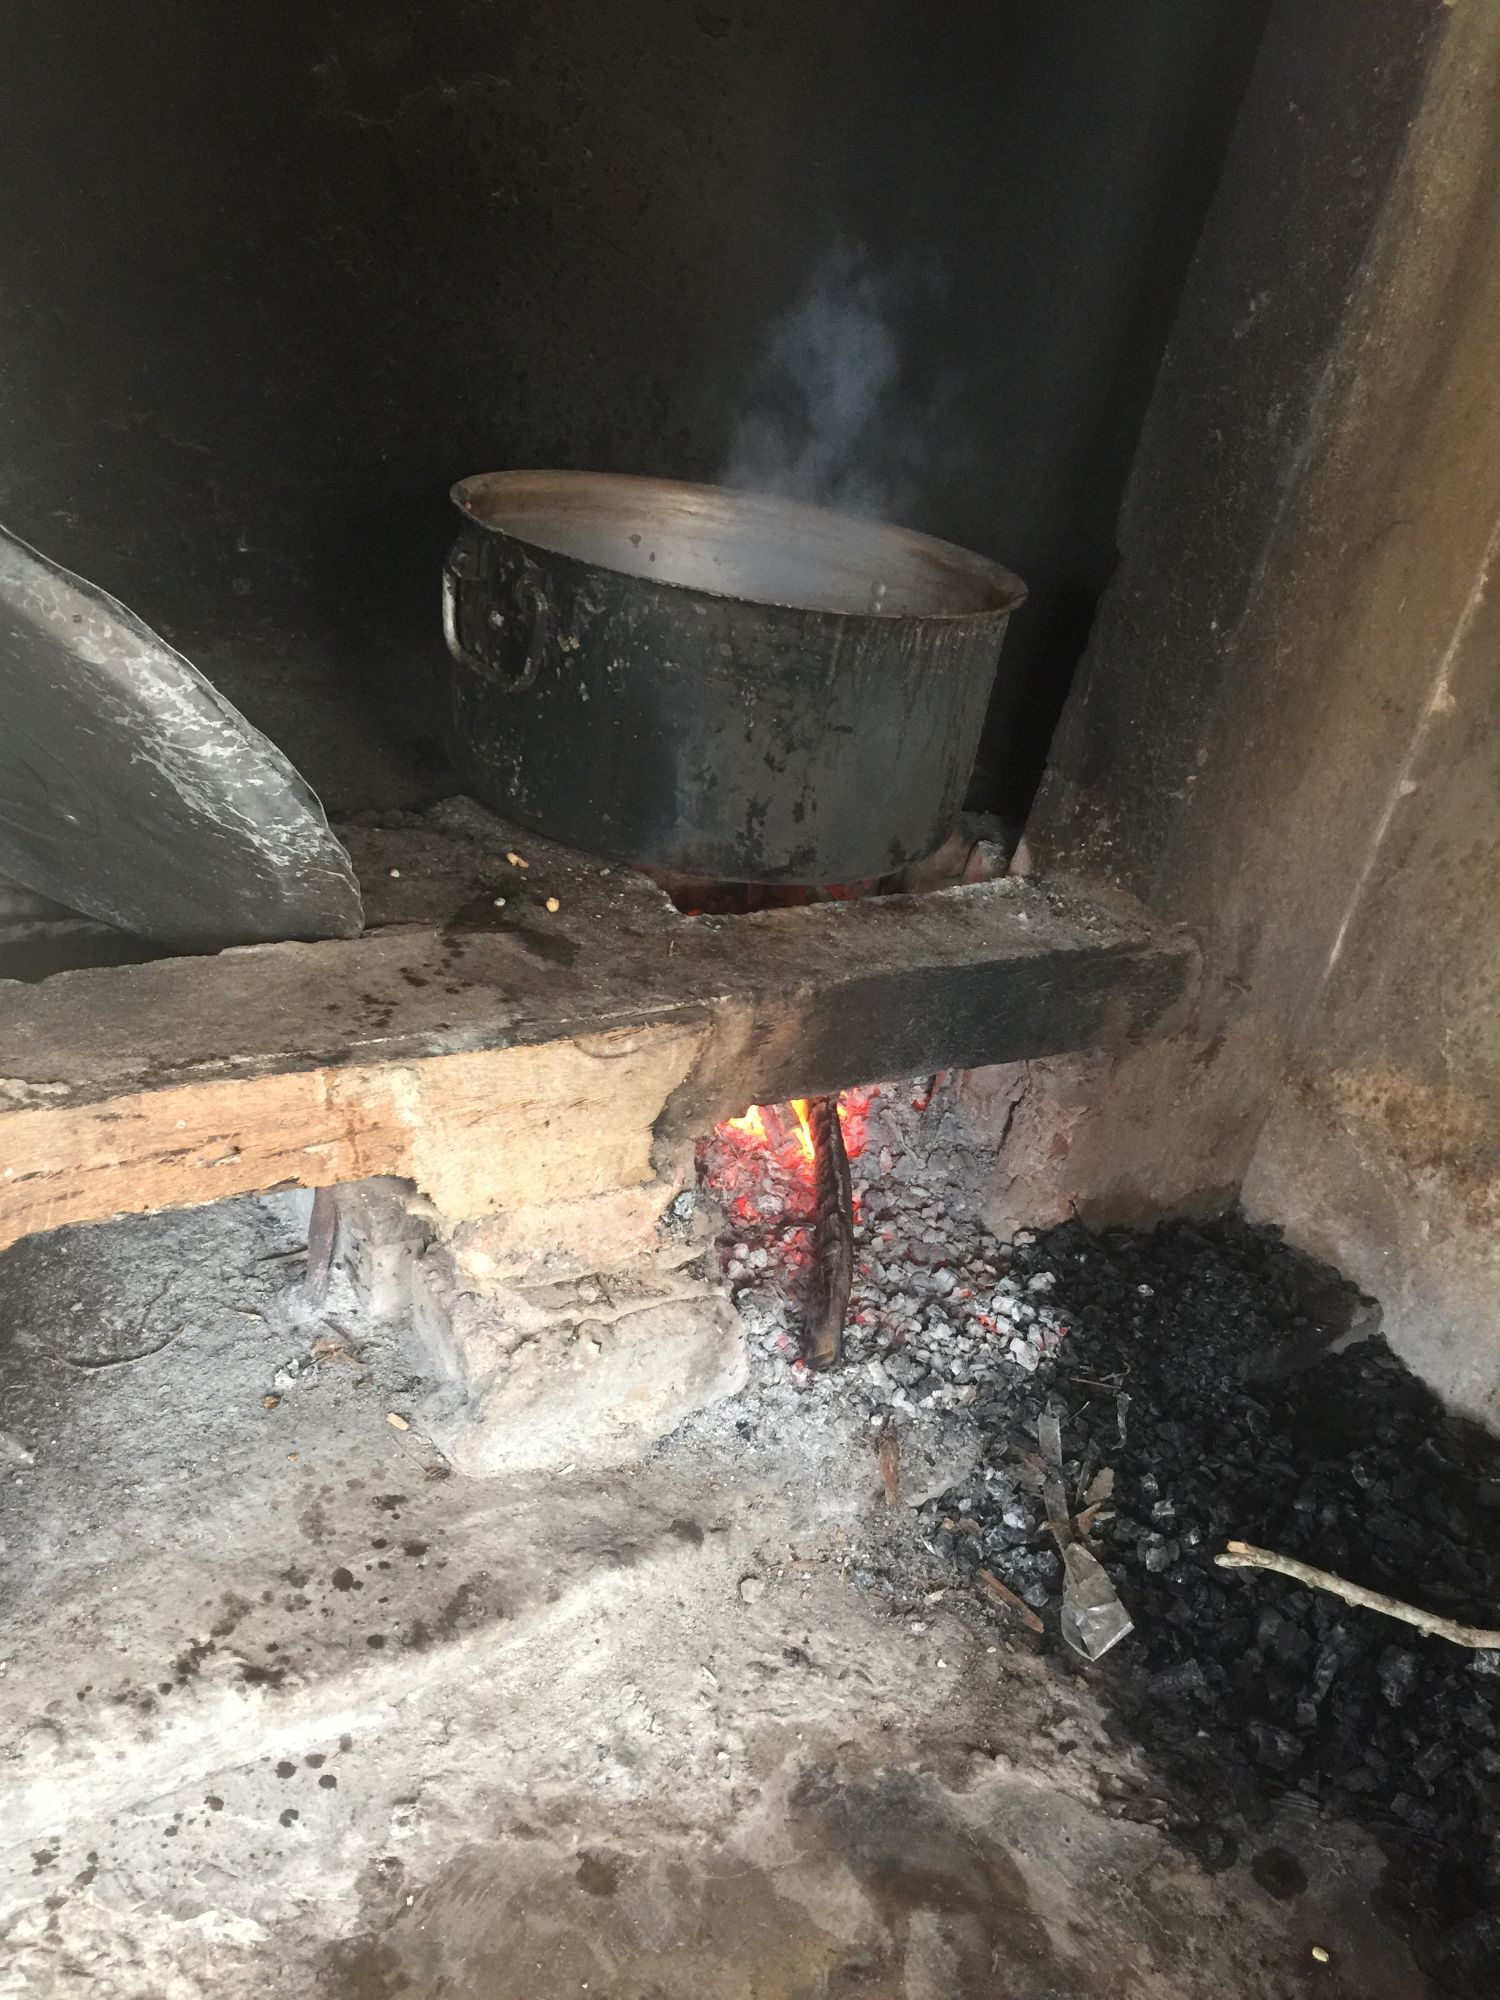 Lunch prepared on the wood burning stove